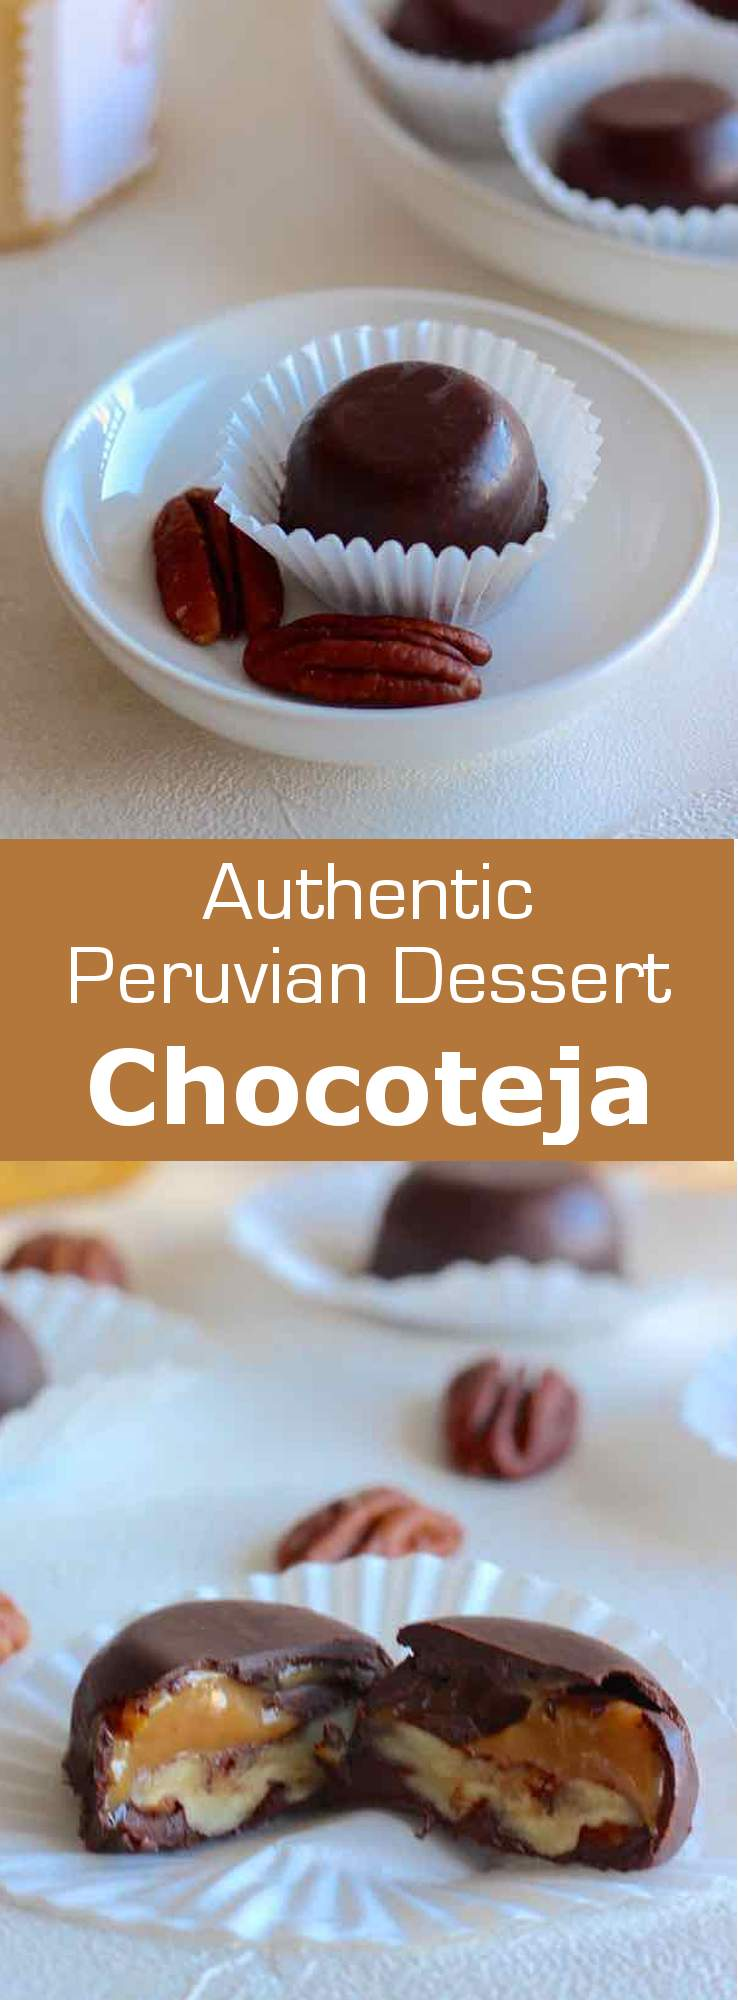 Chocotejas are traditional Peruvian chocolate truffles that are filled with dulce de leche and fruits or dried fruits such as pecans. #dessert #latinamerica #southamerica #peru